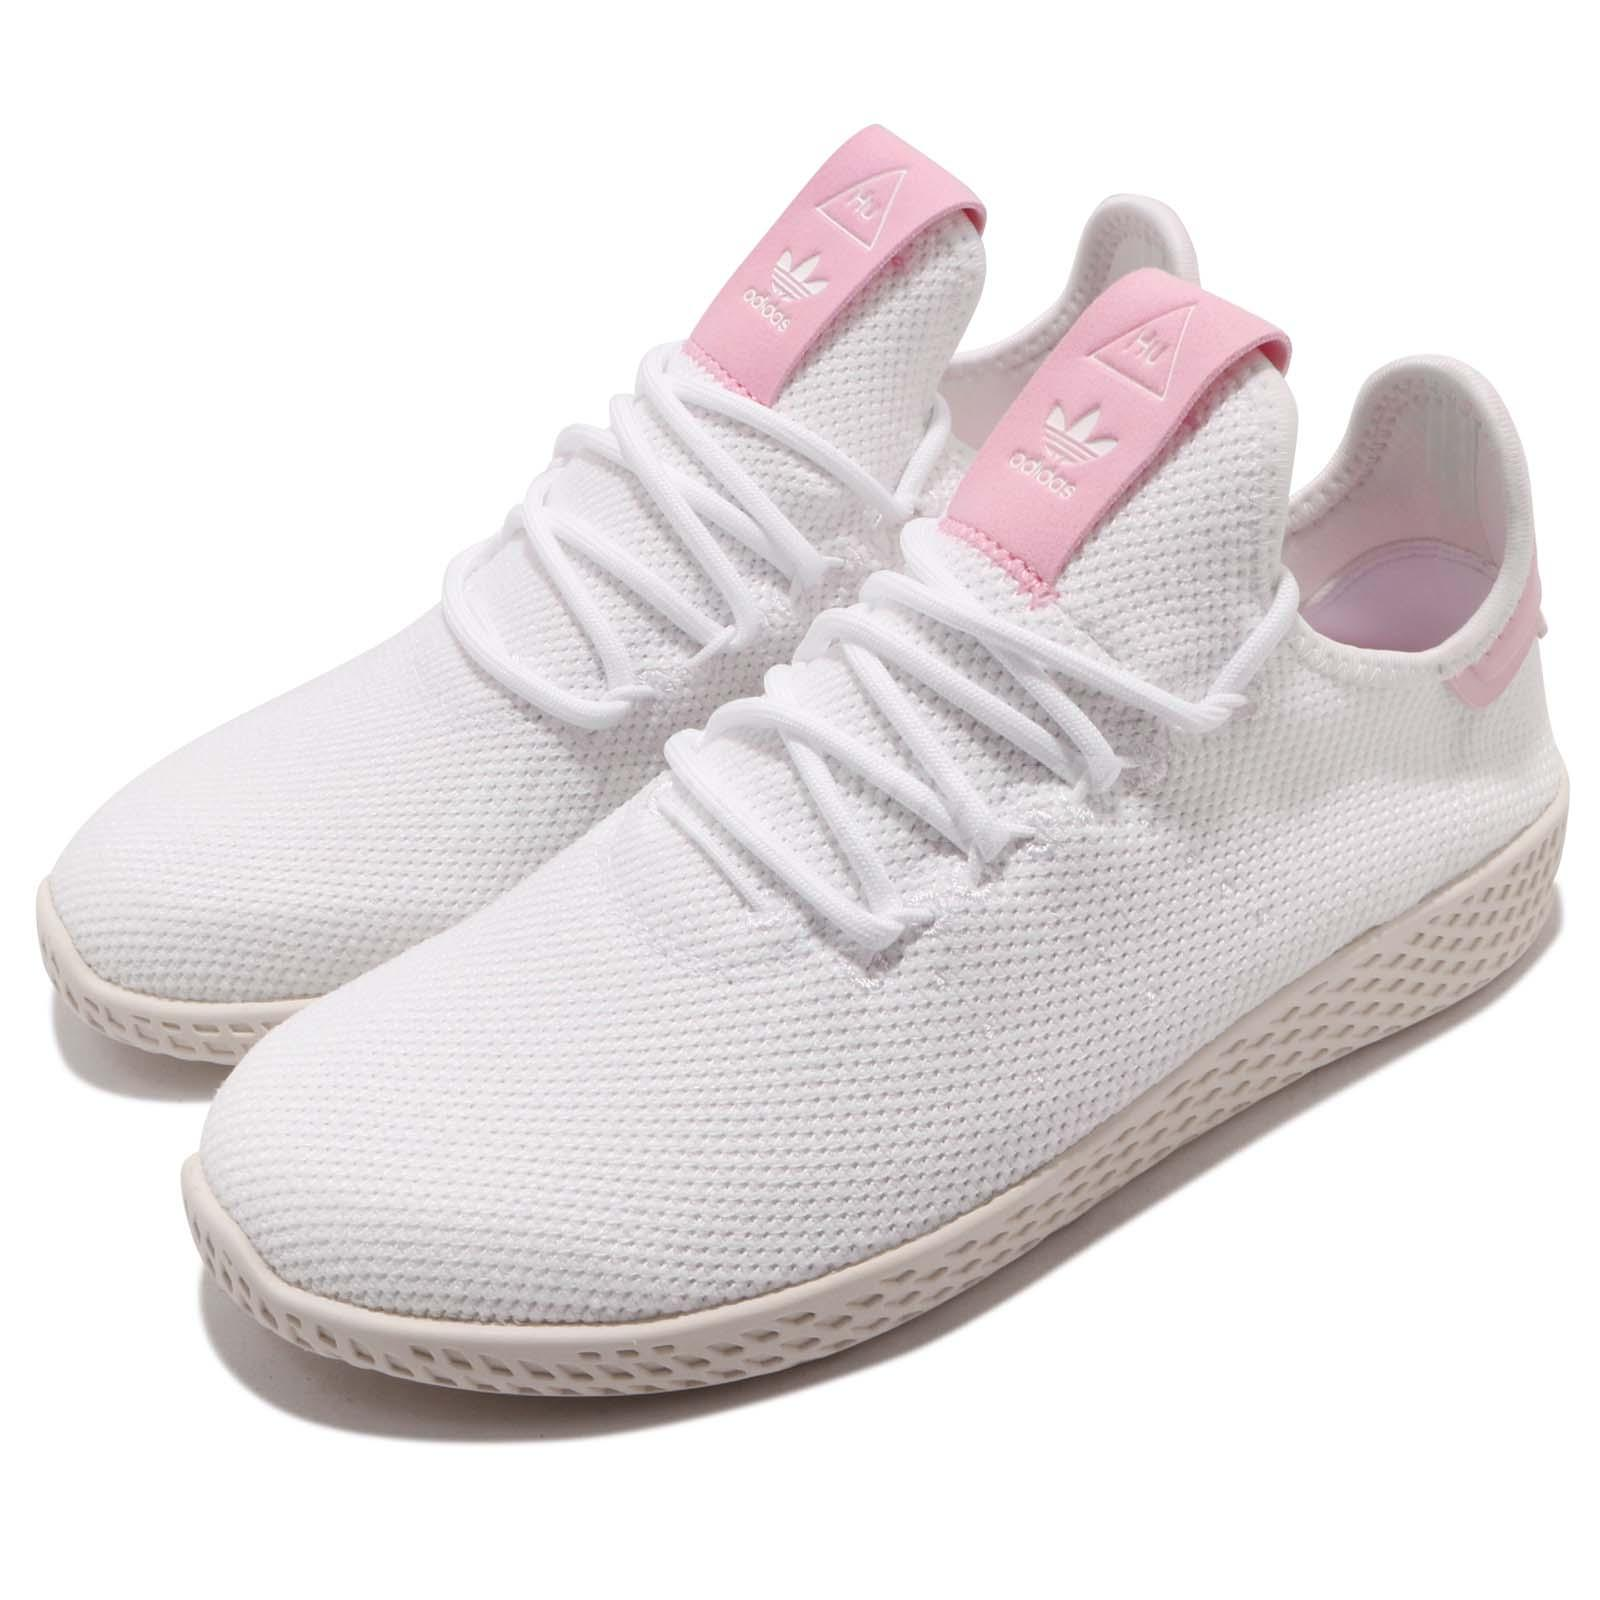 2fc79753ac685 Details about adidas Originals PW Tennis Hu W Footwear White Pink Women  Casual Shoes DB2558